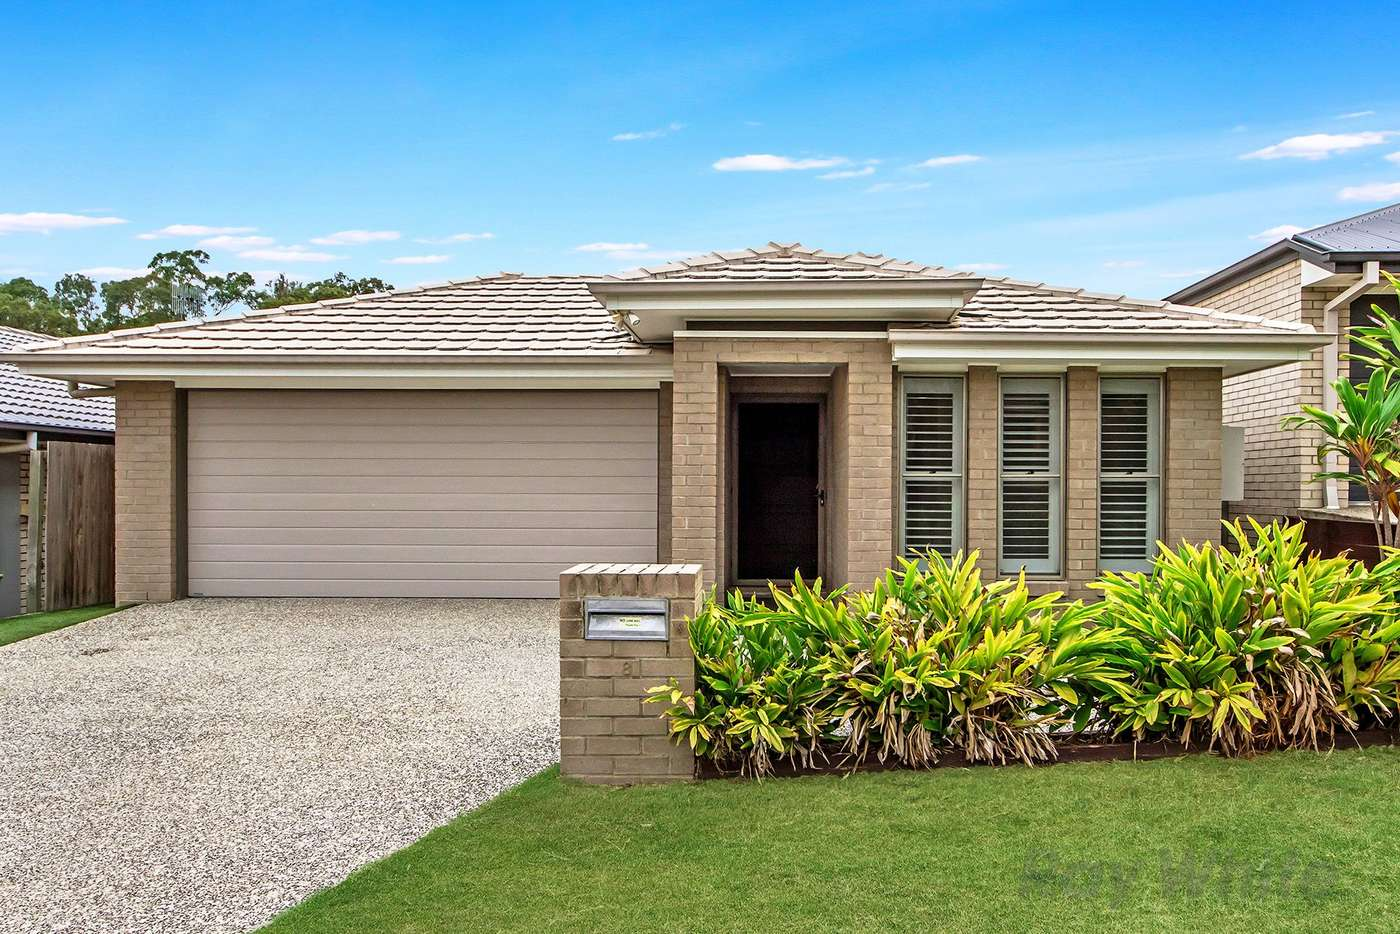 Main view of Homely house listing, 8 Summerhill Crescent, Ormeau Hills QLD 4208